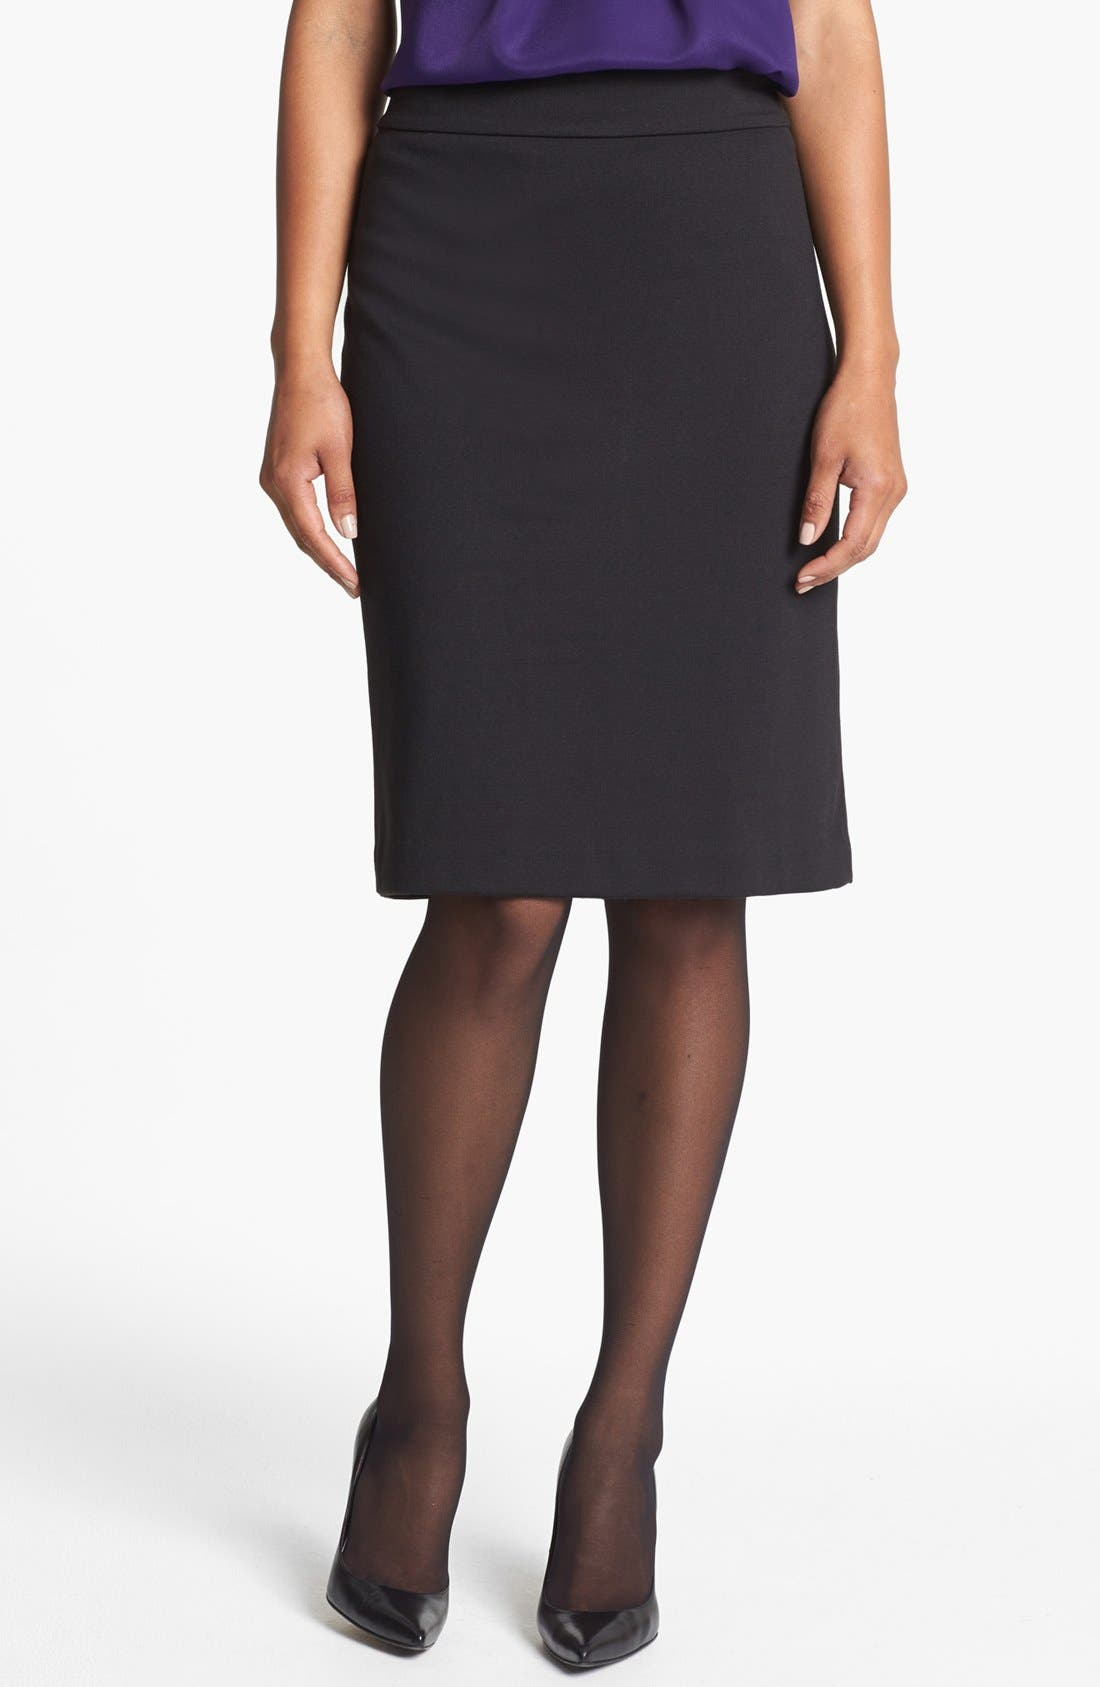 JONES NEW YORK,                             'Lucy' Ponte Knit Pencil Skirt,                             Main thumbnail 1, color,                             001